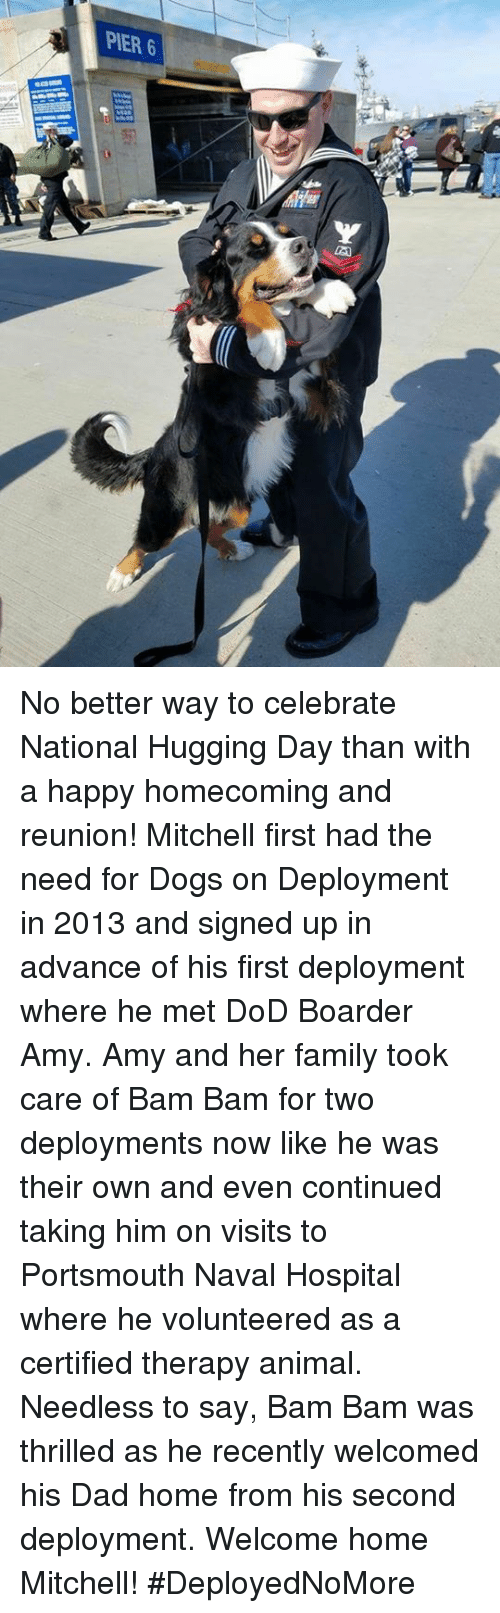 boarders: PIER 6 No better way to celebrate National Hugging Day than with a happy homecoming and reunion!  Mitchell first had the need for Dogs on Deployment in 2013 and signed up in advance of his first deployment where he met DoD Boarder Amy. Amy and her family took care of Bam Bam for two deployments now like he was their own and even continued taking him on visits to Portsmouth Naval Hospital where he volunteered as a certified therapy animal.   Needless to say, Bam Bam was thrilled as he recently welcomed his Dad home from his second deployment. Welcome home Mitchell! #DeployedNoMore